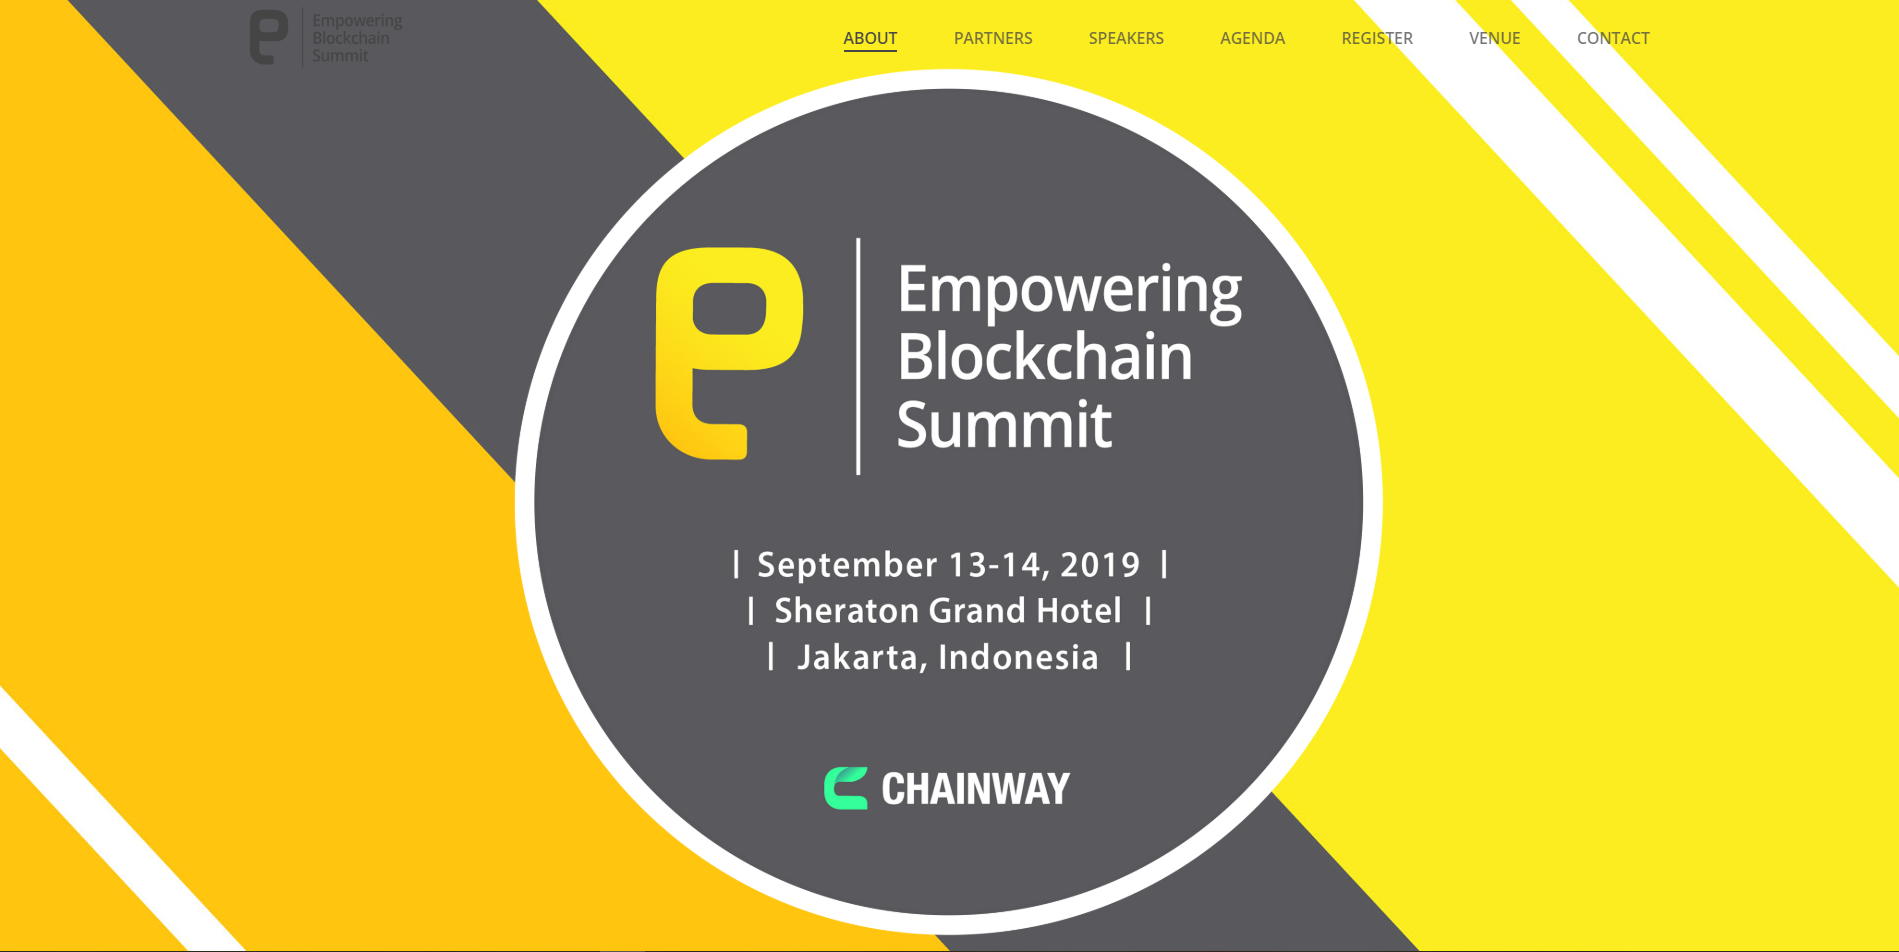 Empowering Blockchain Summit 2019